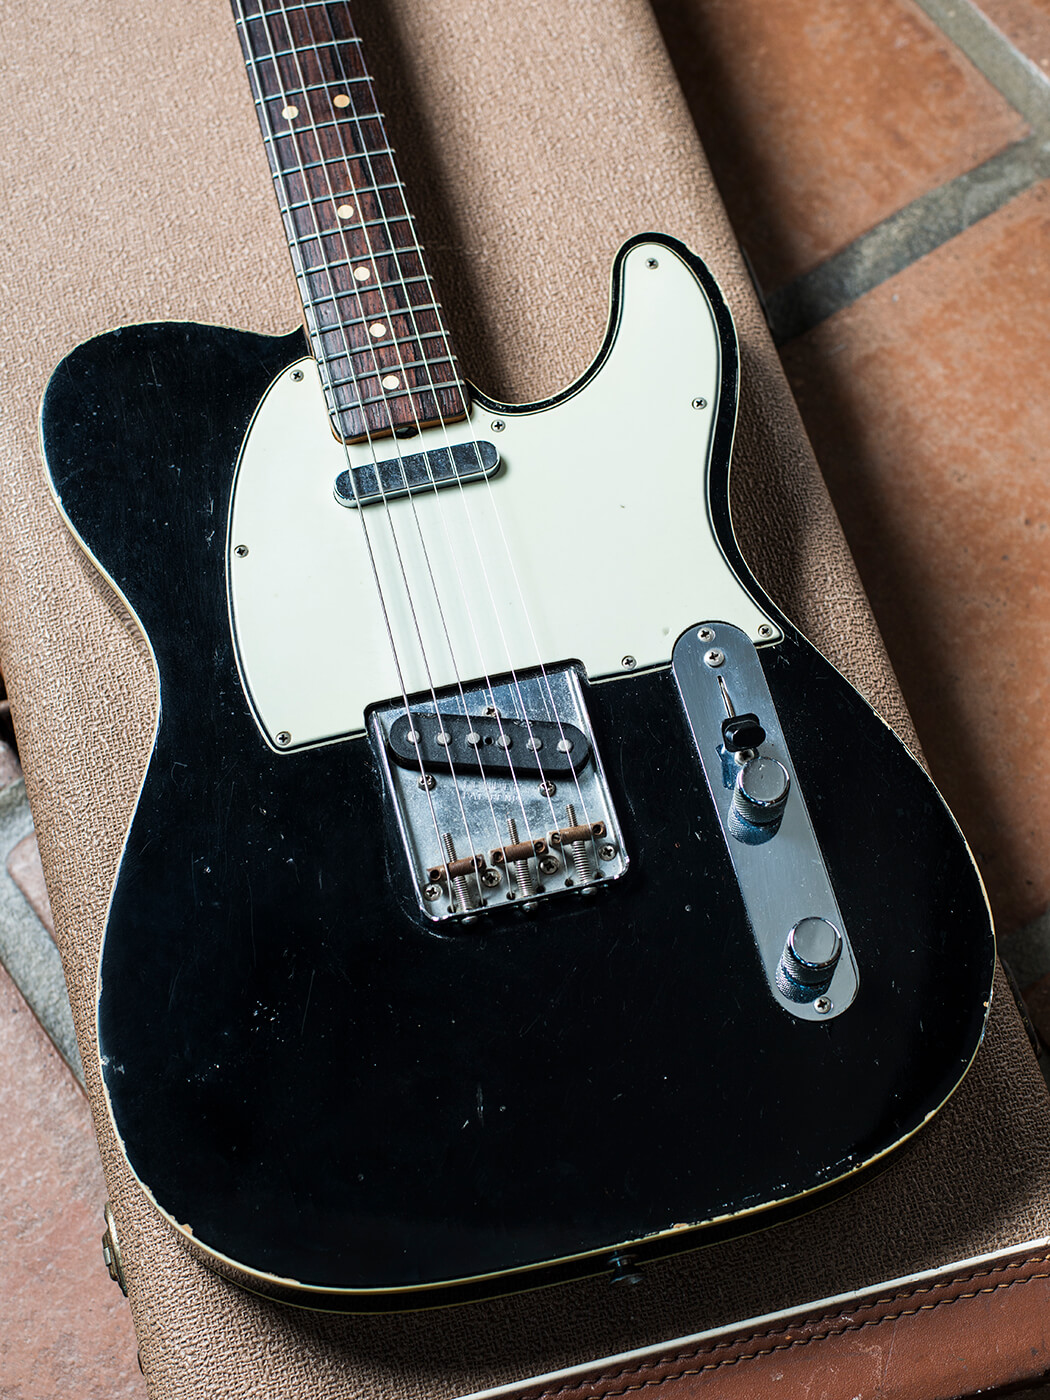 Brian Ray's factory black 1963 Custom Telecaster